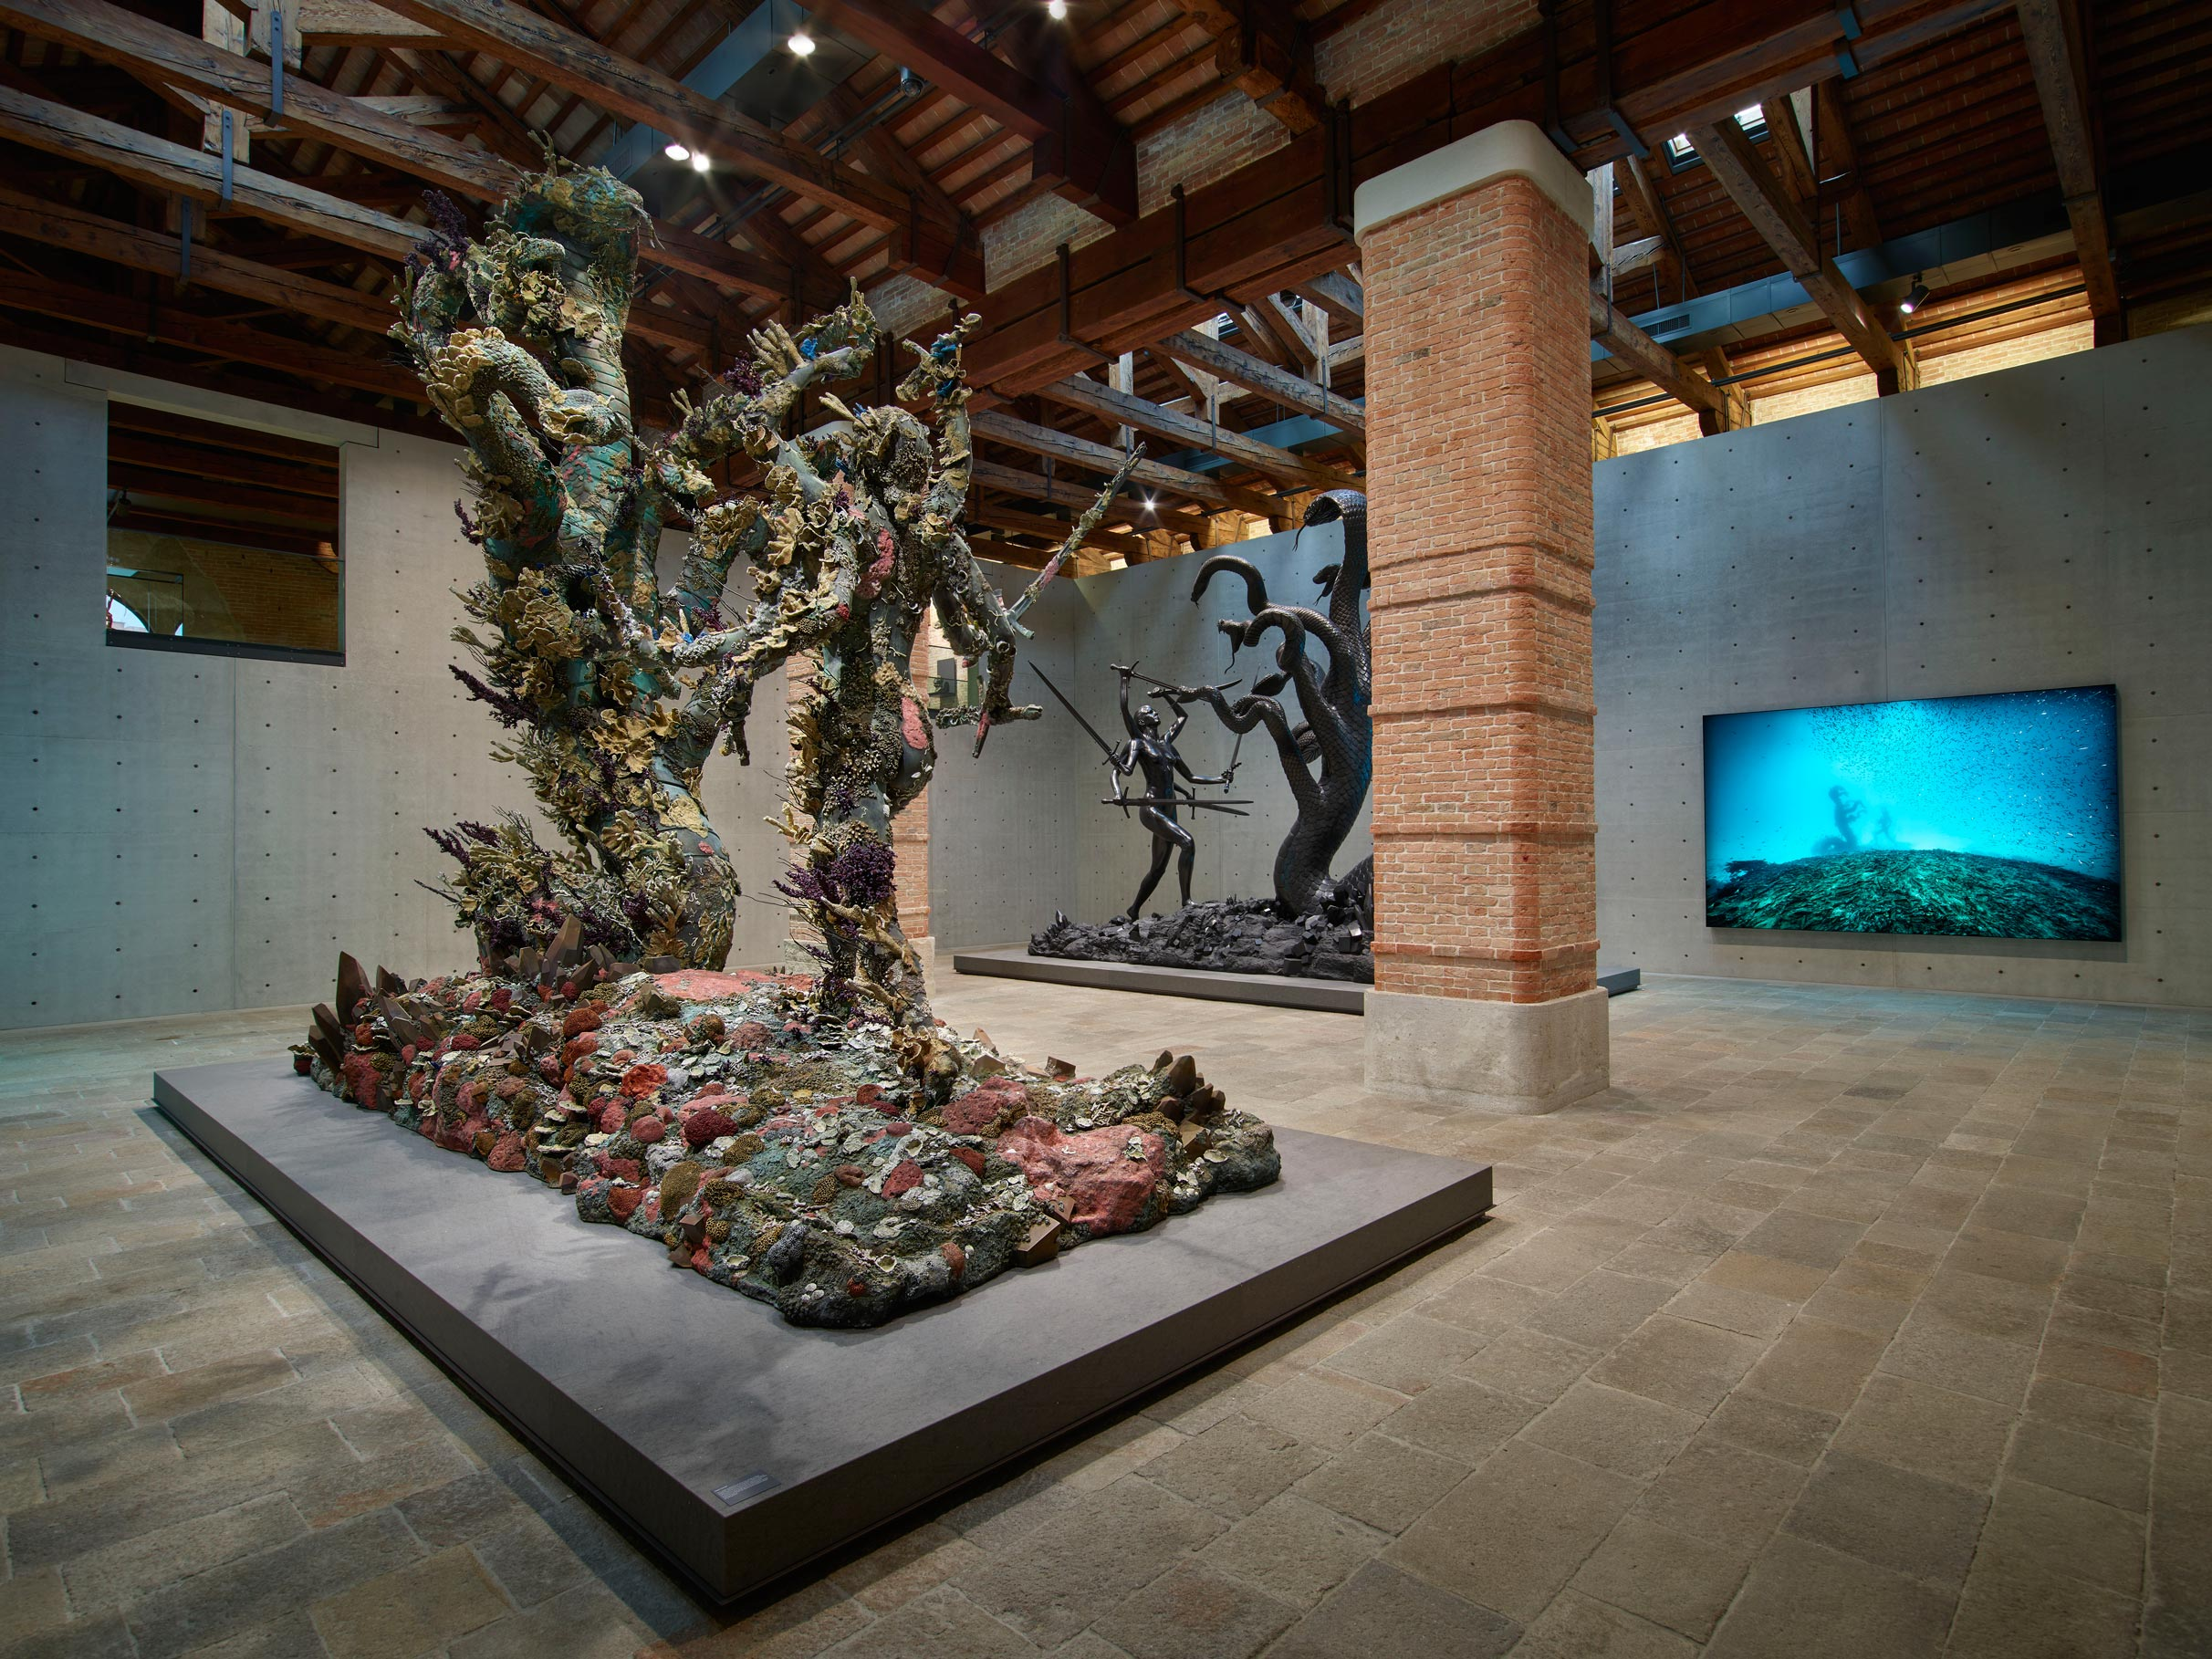 Room 11: (left to right) Damien Hirst, Hydra and Kali (two versions), Hydra and Kali Beneath the Waves (photography Christoph Gerigk). Photographed by Prudence Cuming Associates © Damien Hirst and Science Ltd. All rights reserved, DACS/SIAE 2017